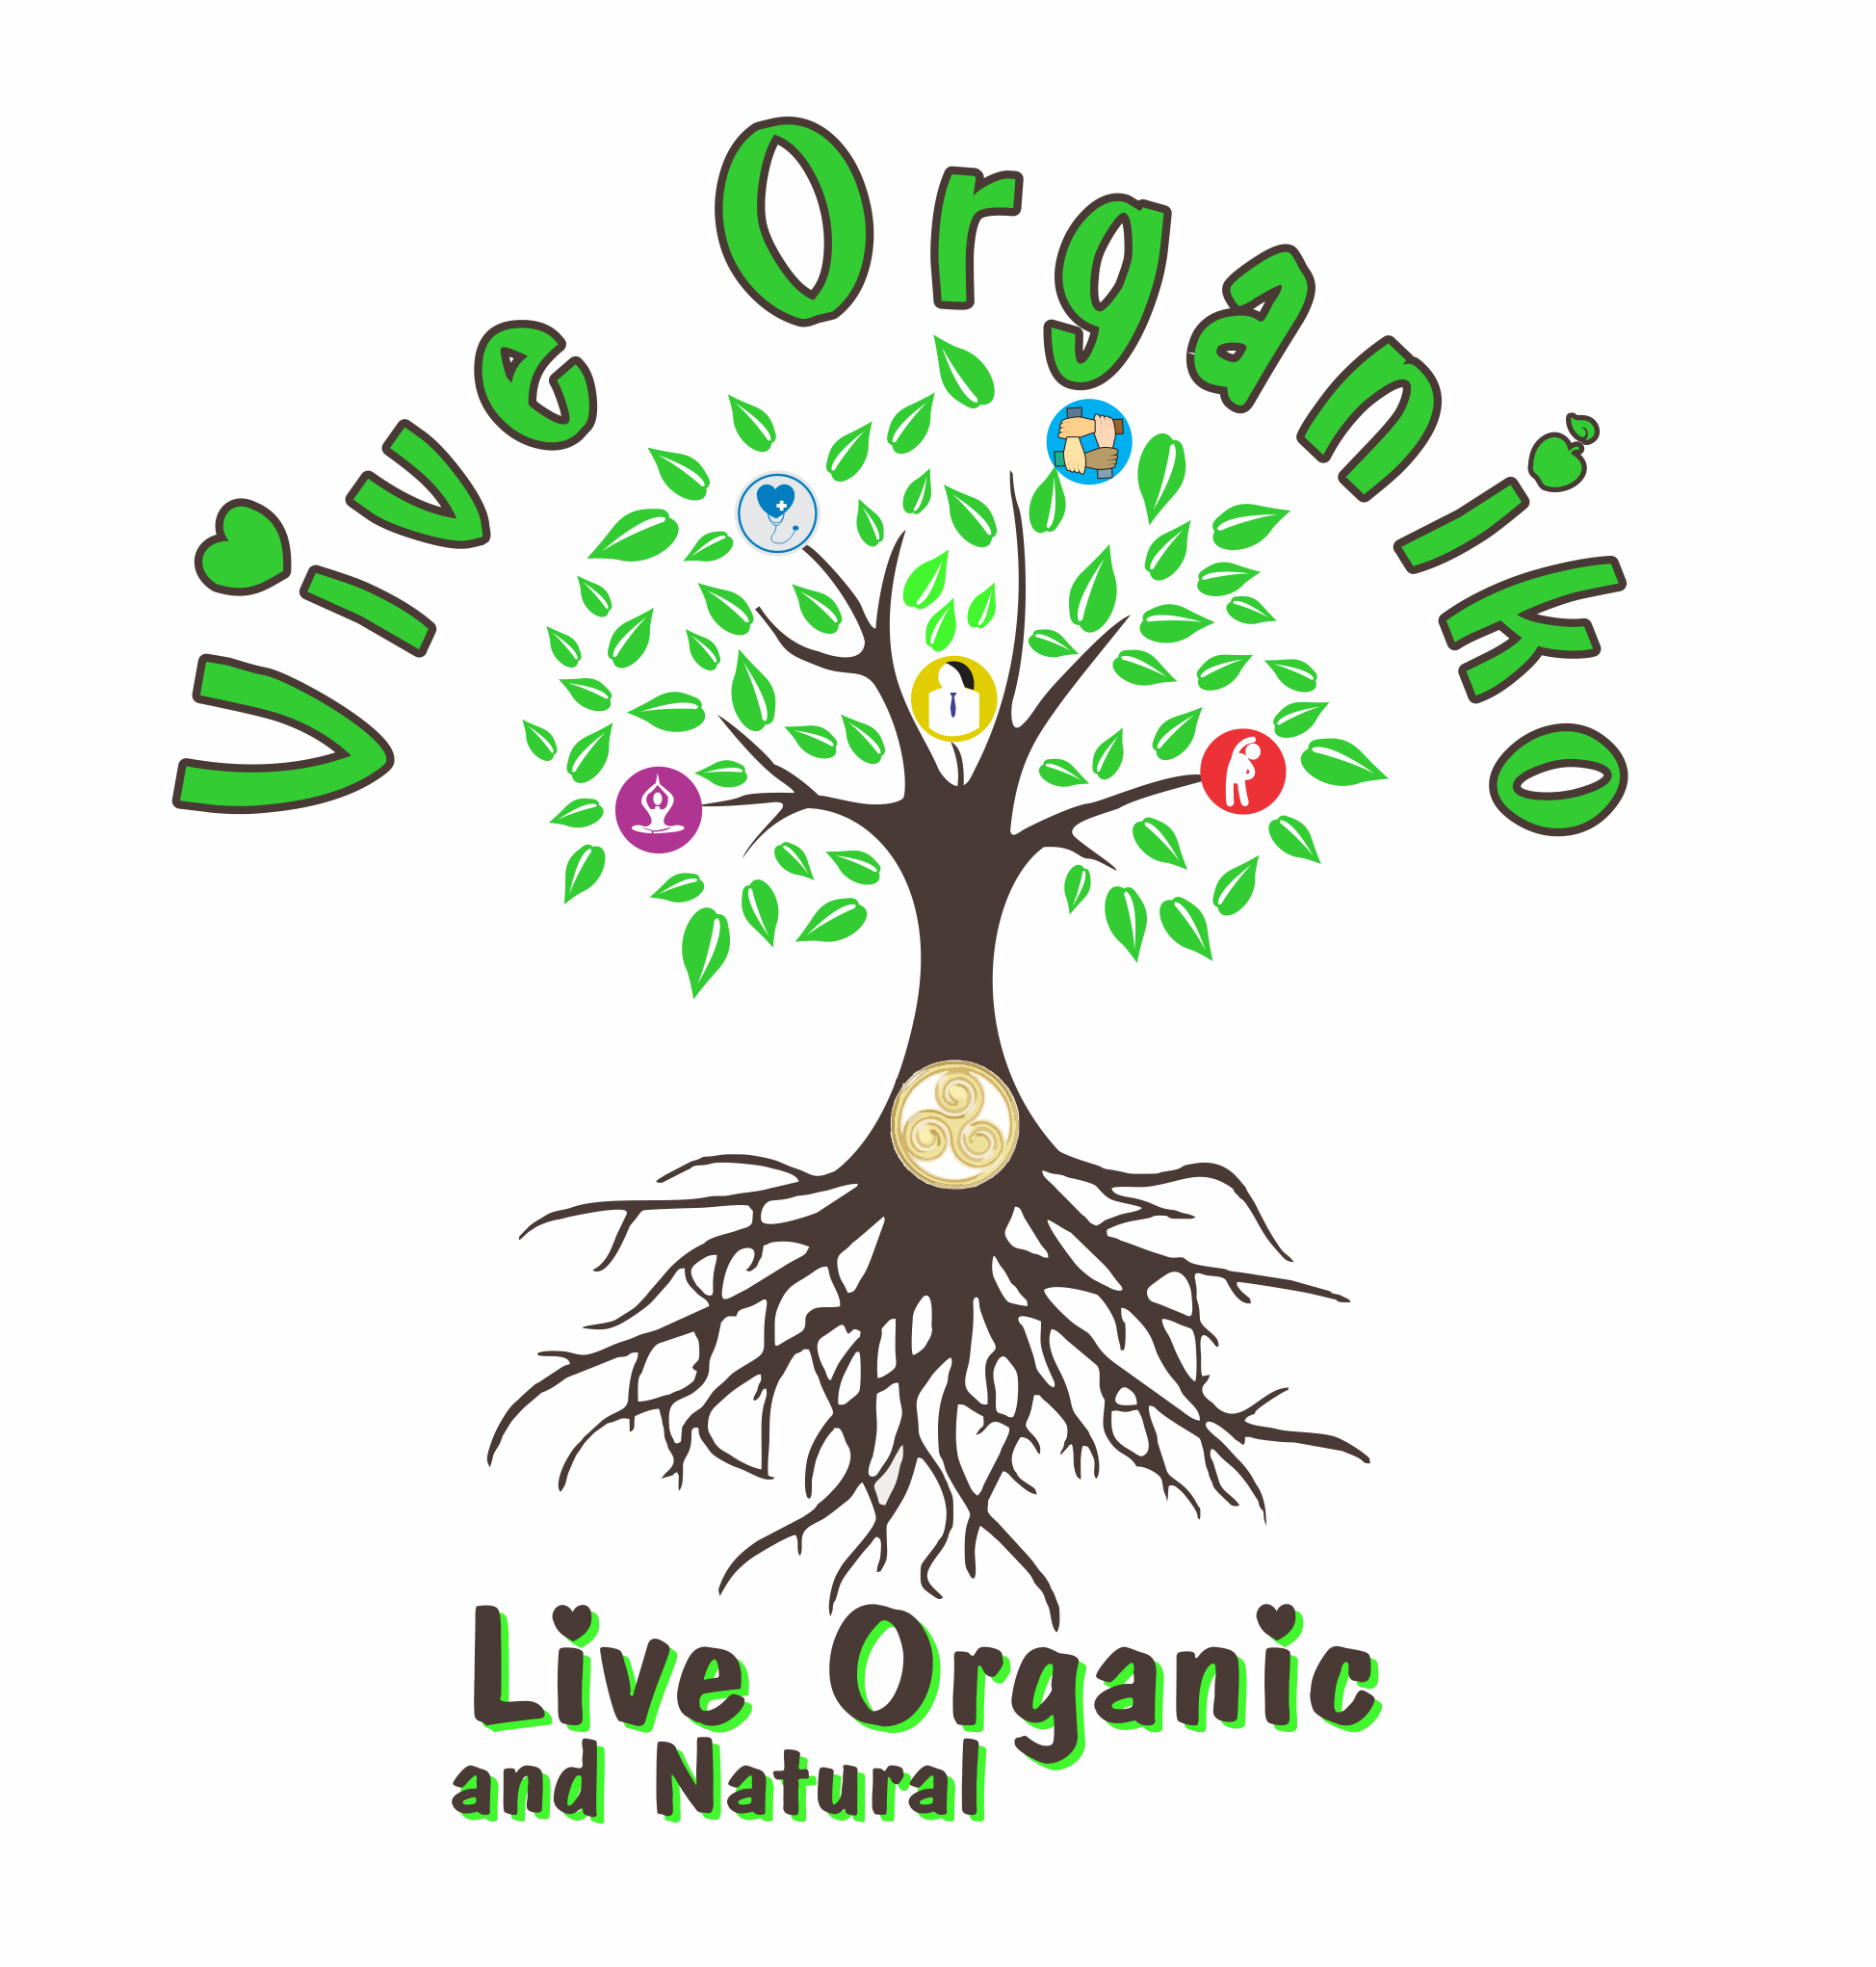 Productos Orgánicos / Organic products